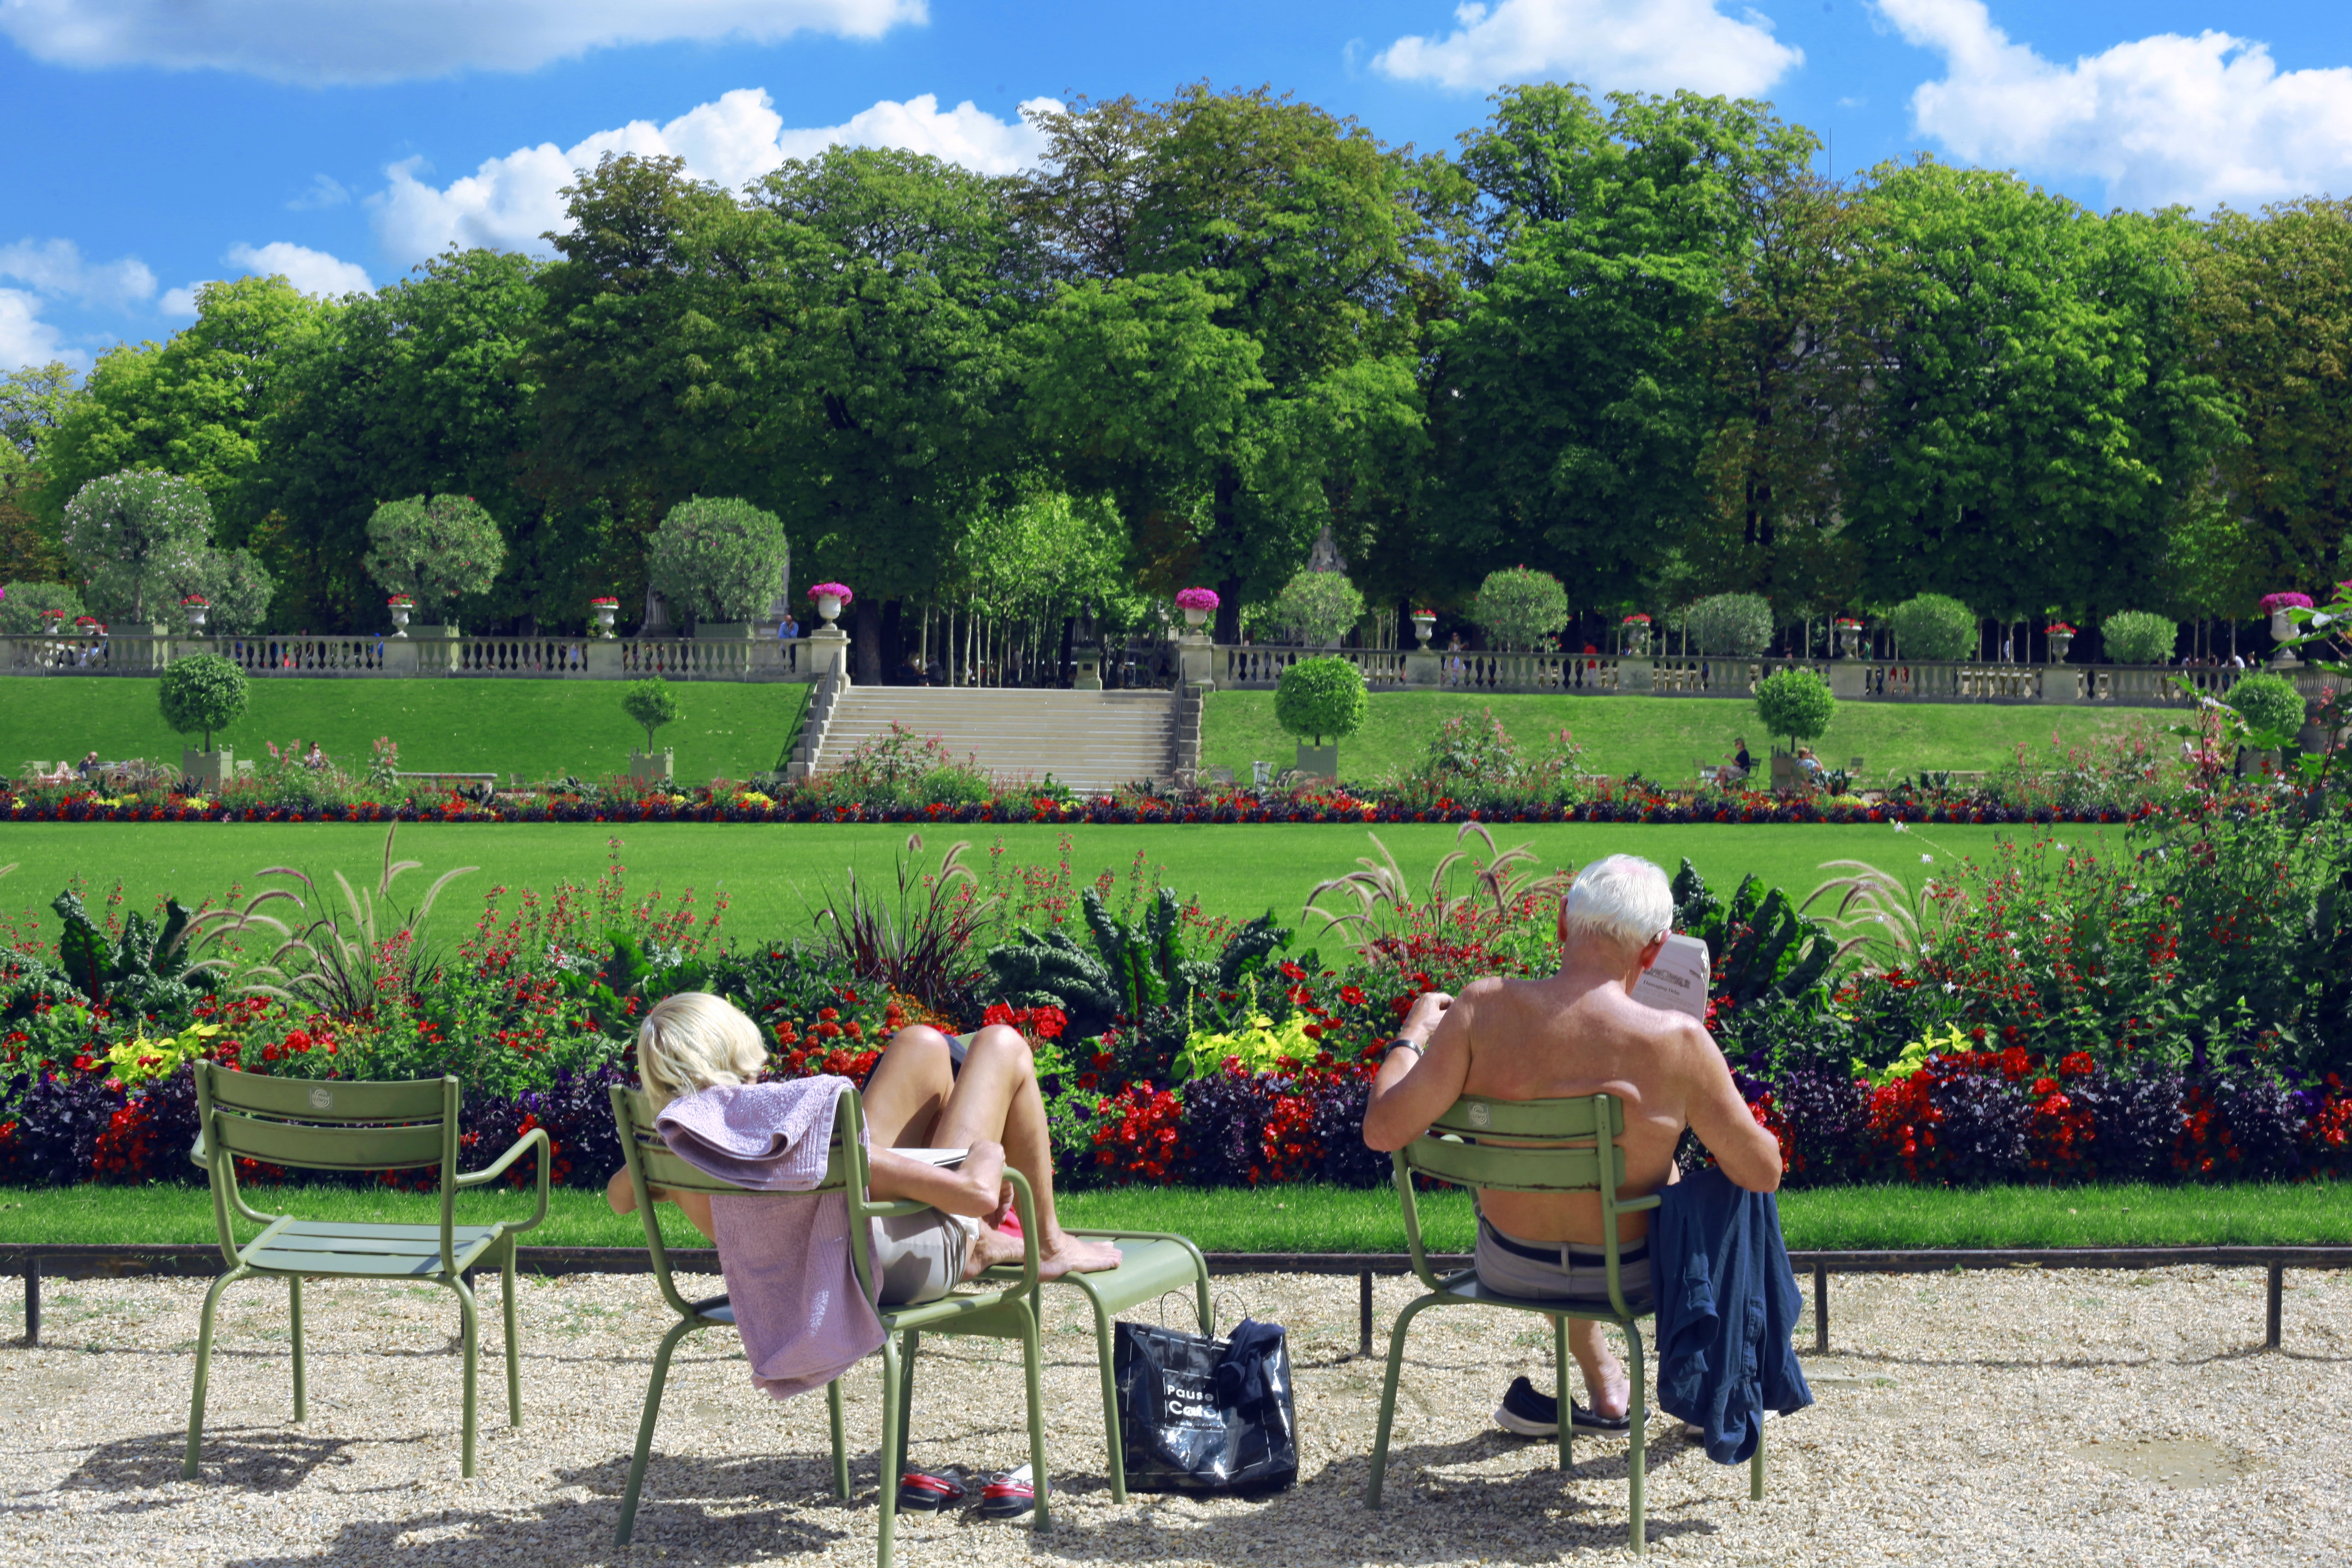 Charmant Caucasian Woman And Man Relaxing And Sunbathing In Beautiful Flowery Garden  At Le Jardin Du Luxembourg